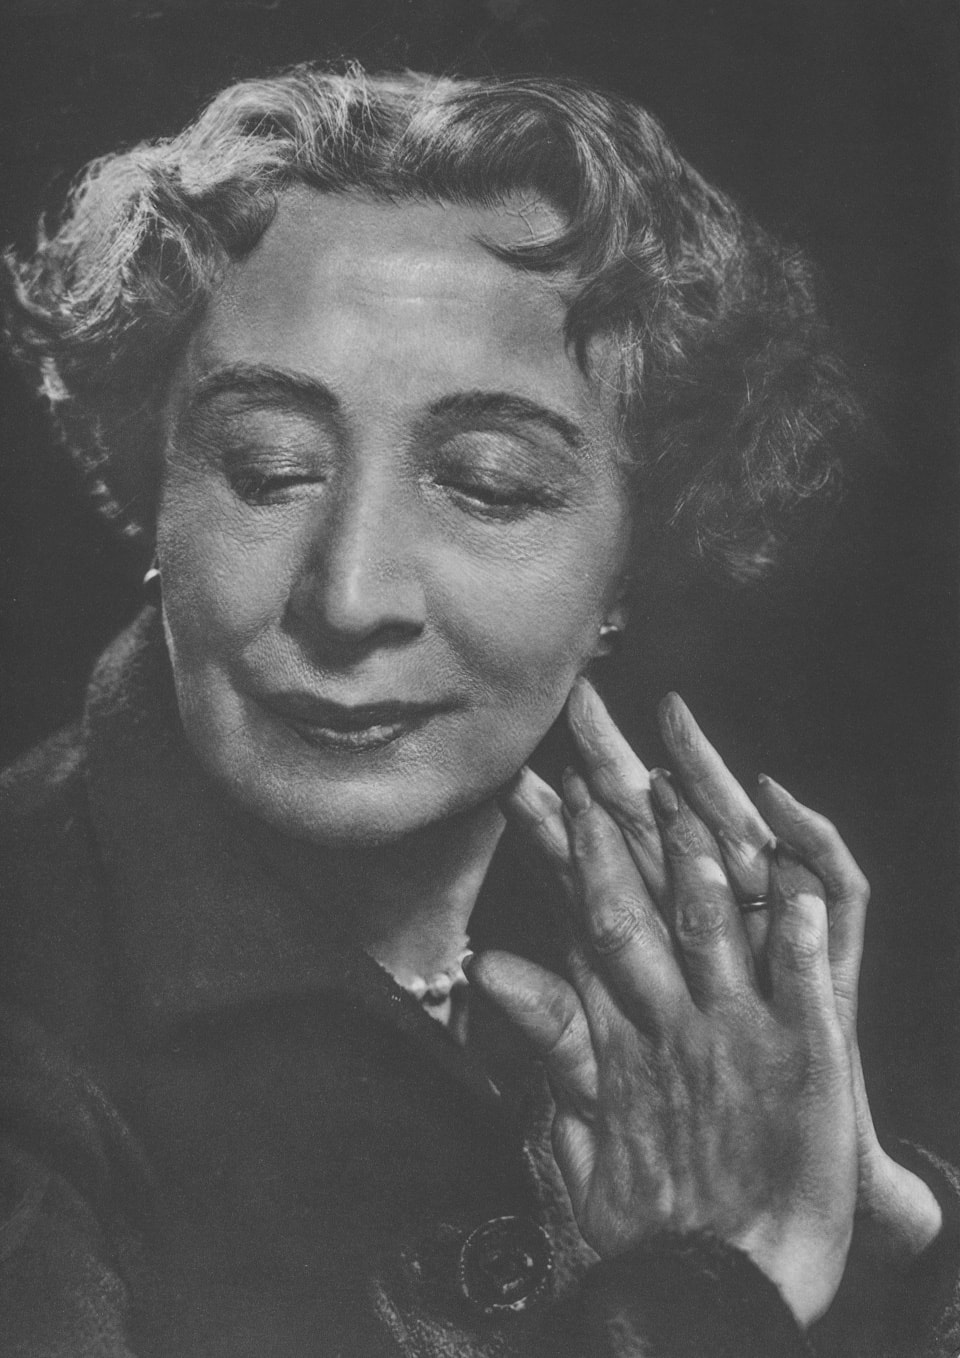 Dame Edith Evans by Yousuf Karsh, 1954